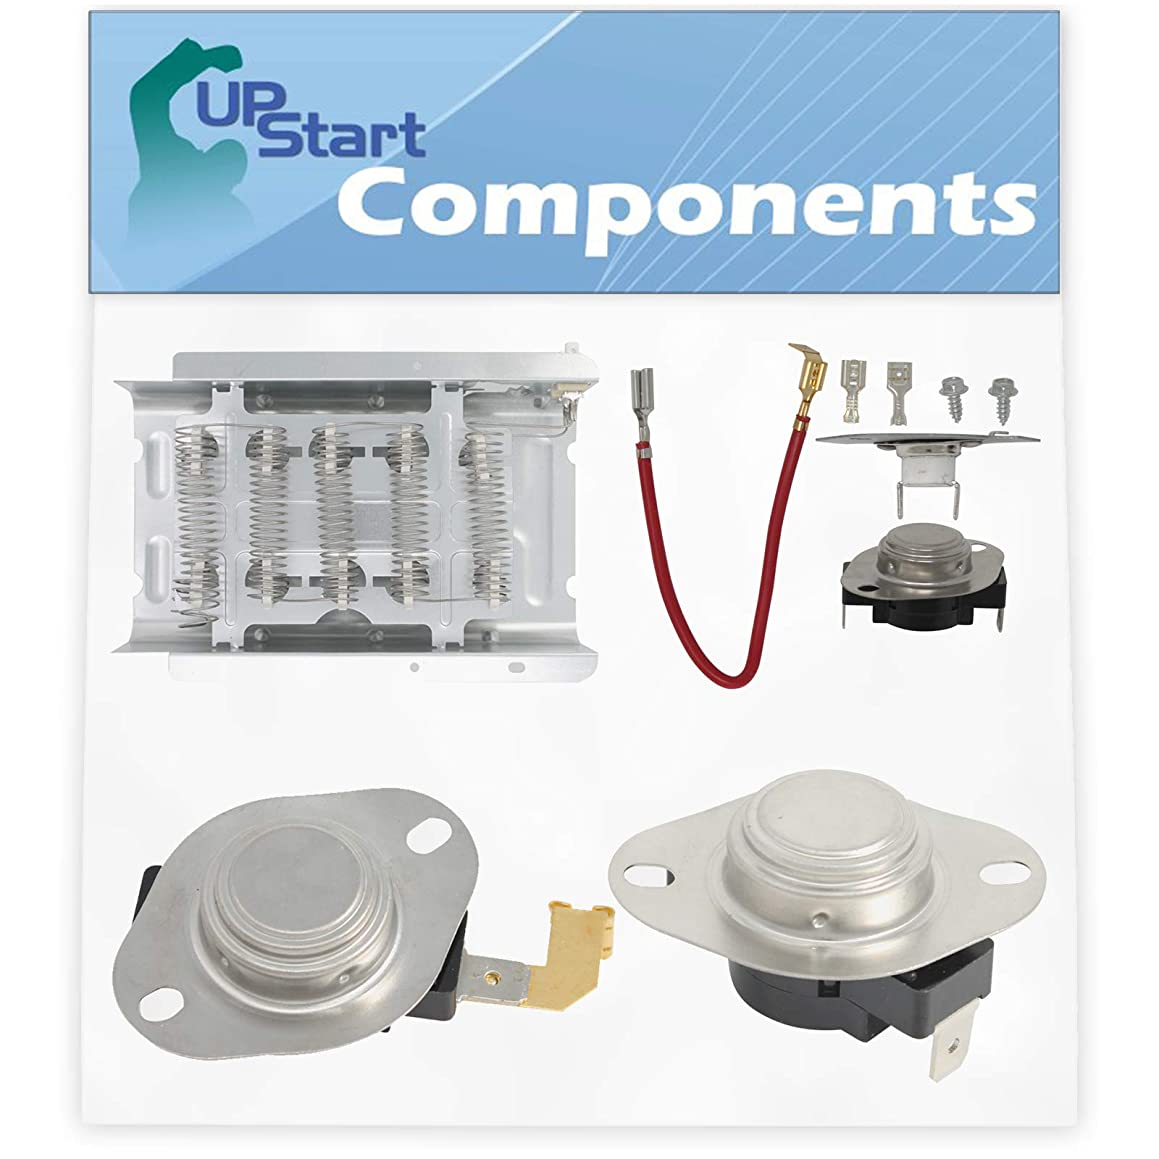 279838, 279816, 3392519 & 3977767 Dryer Heating Element & Thermostat Combo Pack Replacement for Whirlpool IJ82002 Dryer - Compatible Heater Element & Thermostat Kit